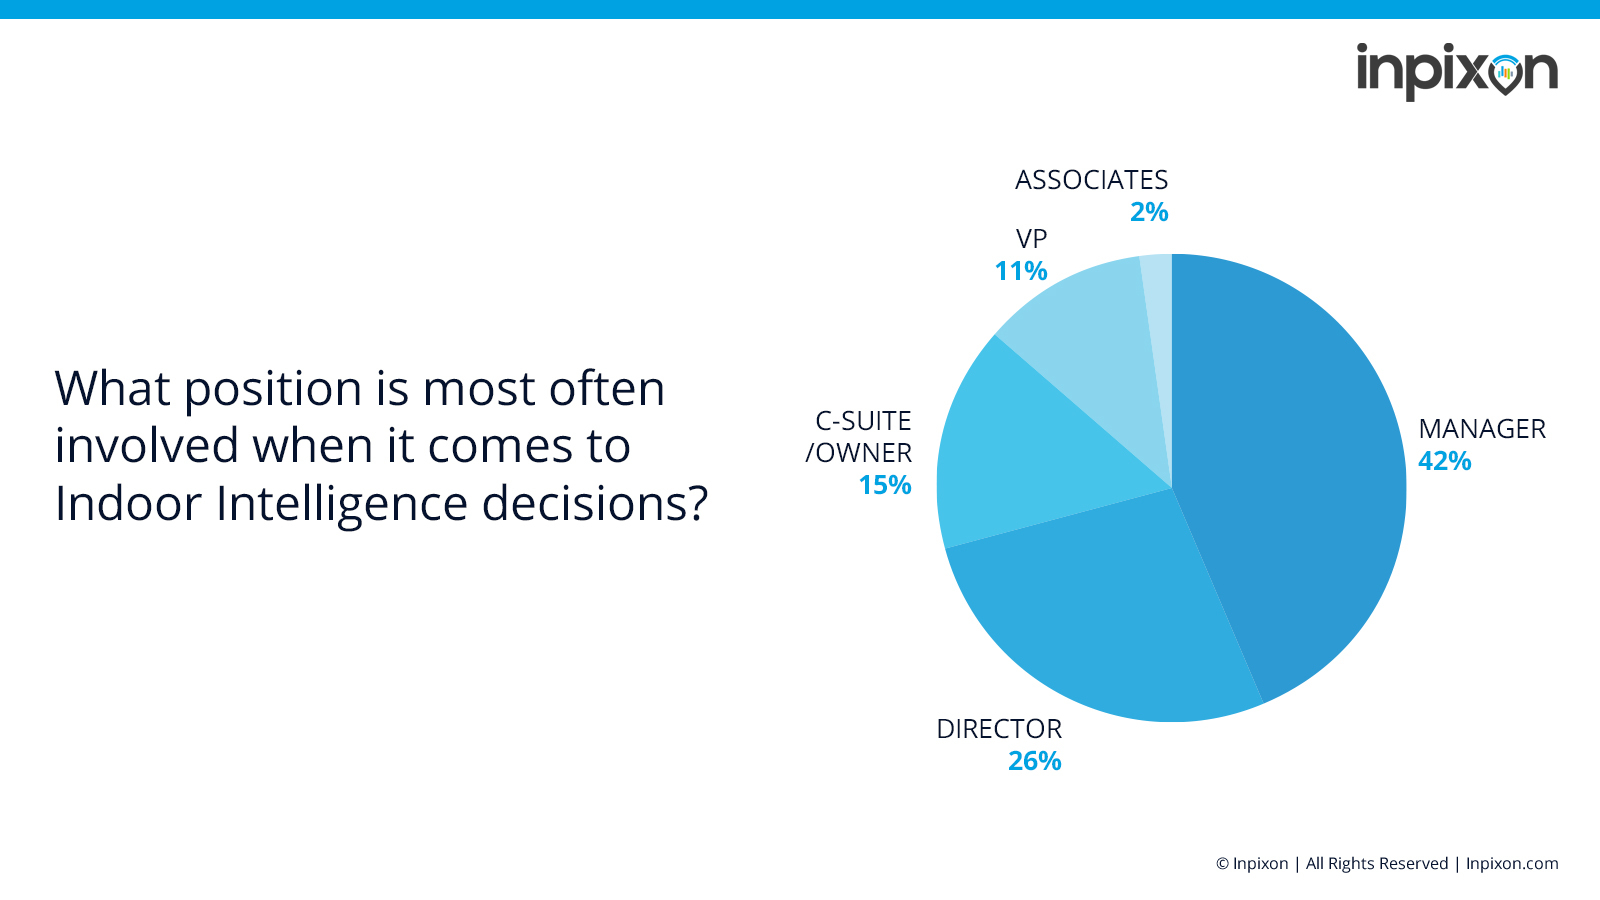 Chart indicating the distribution of operational roles involved in indoor intelligence decision making.